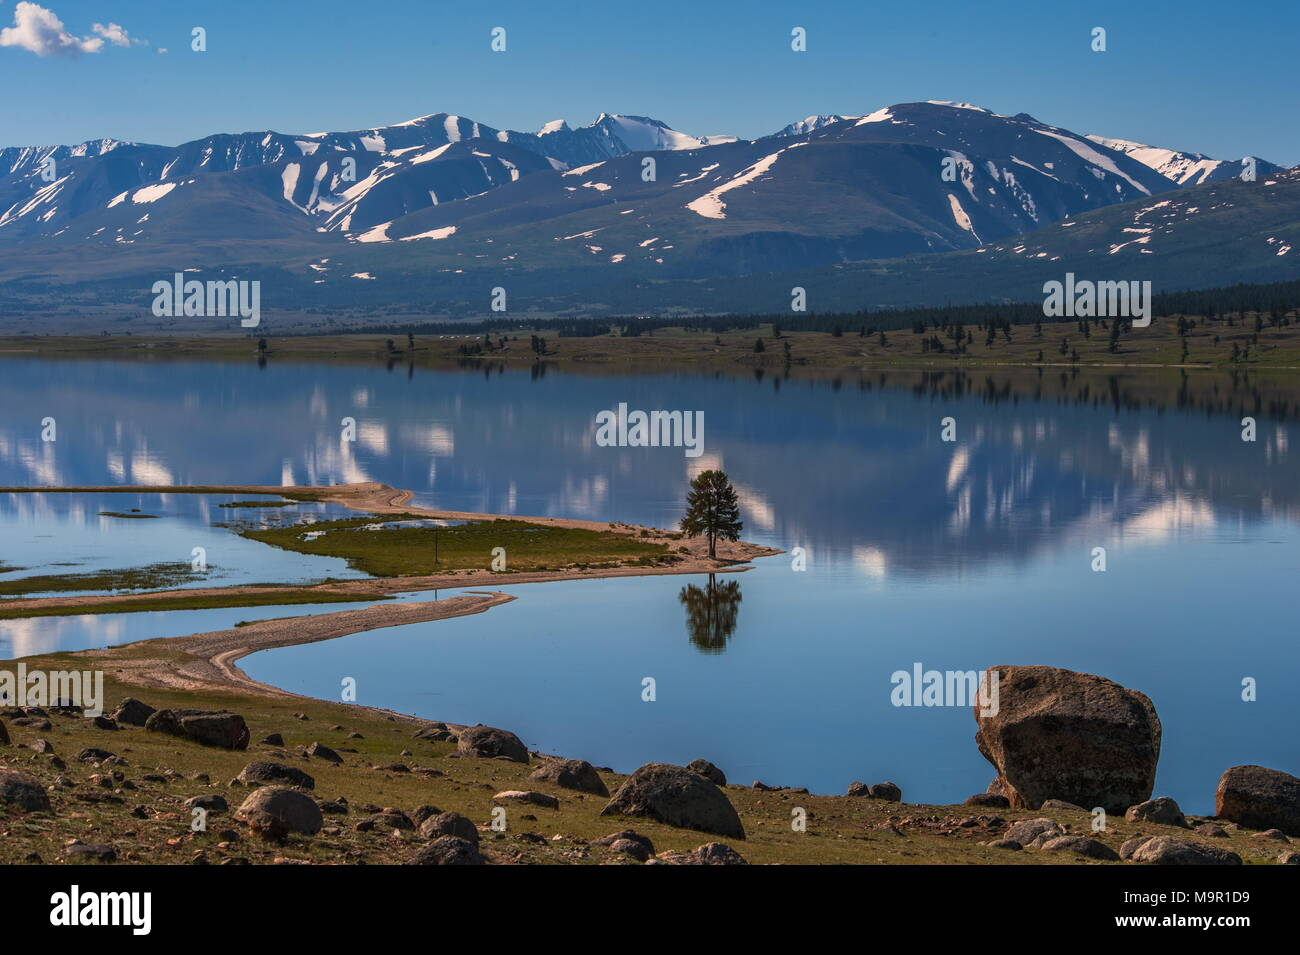 Khoton Lake, snow-covered mountains in the back, Mongolia - Stock Image